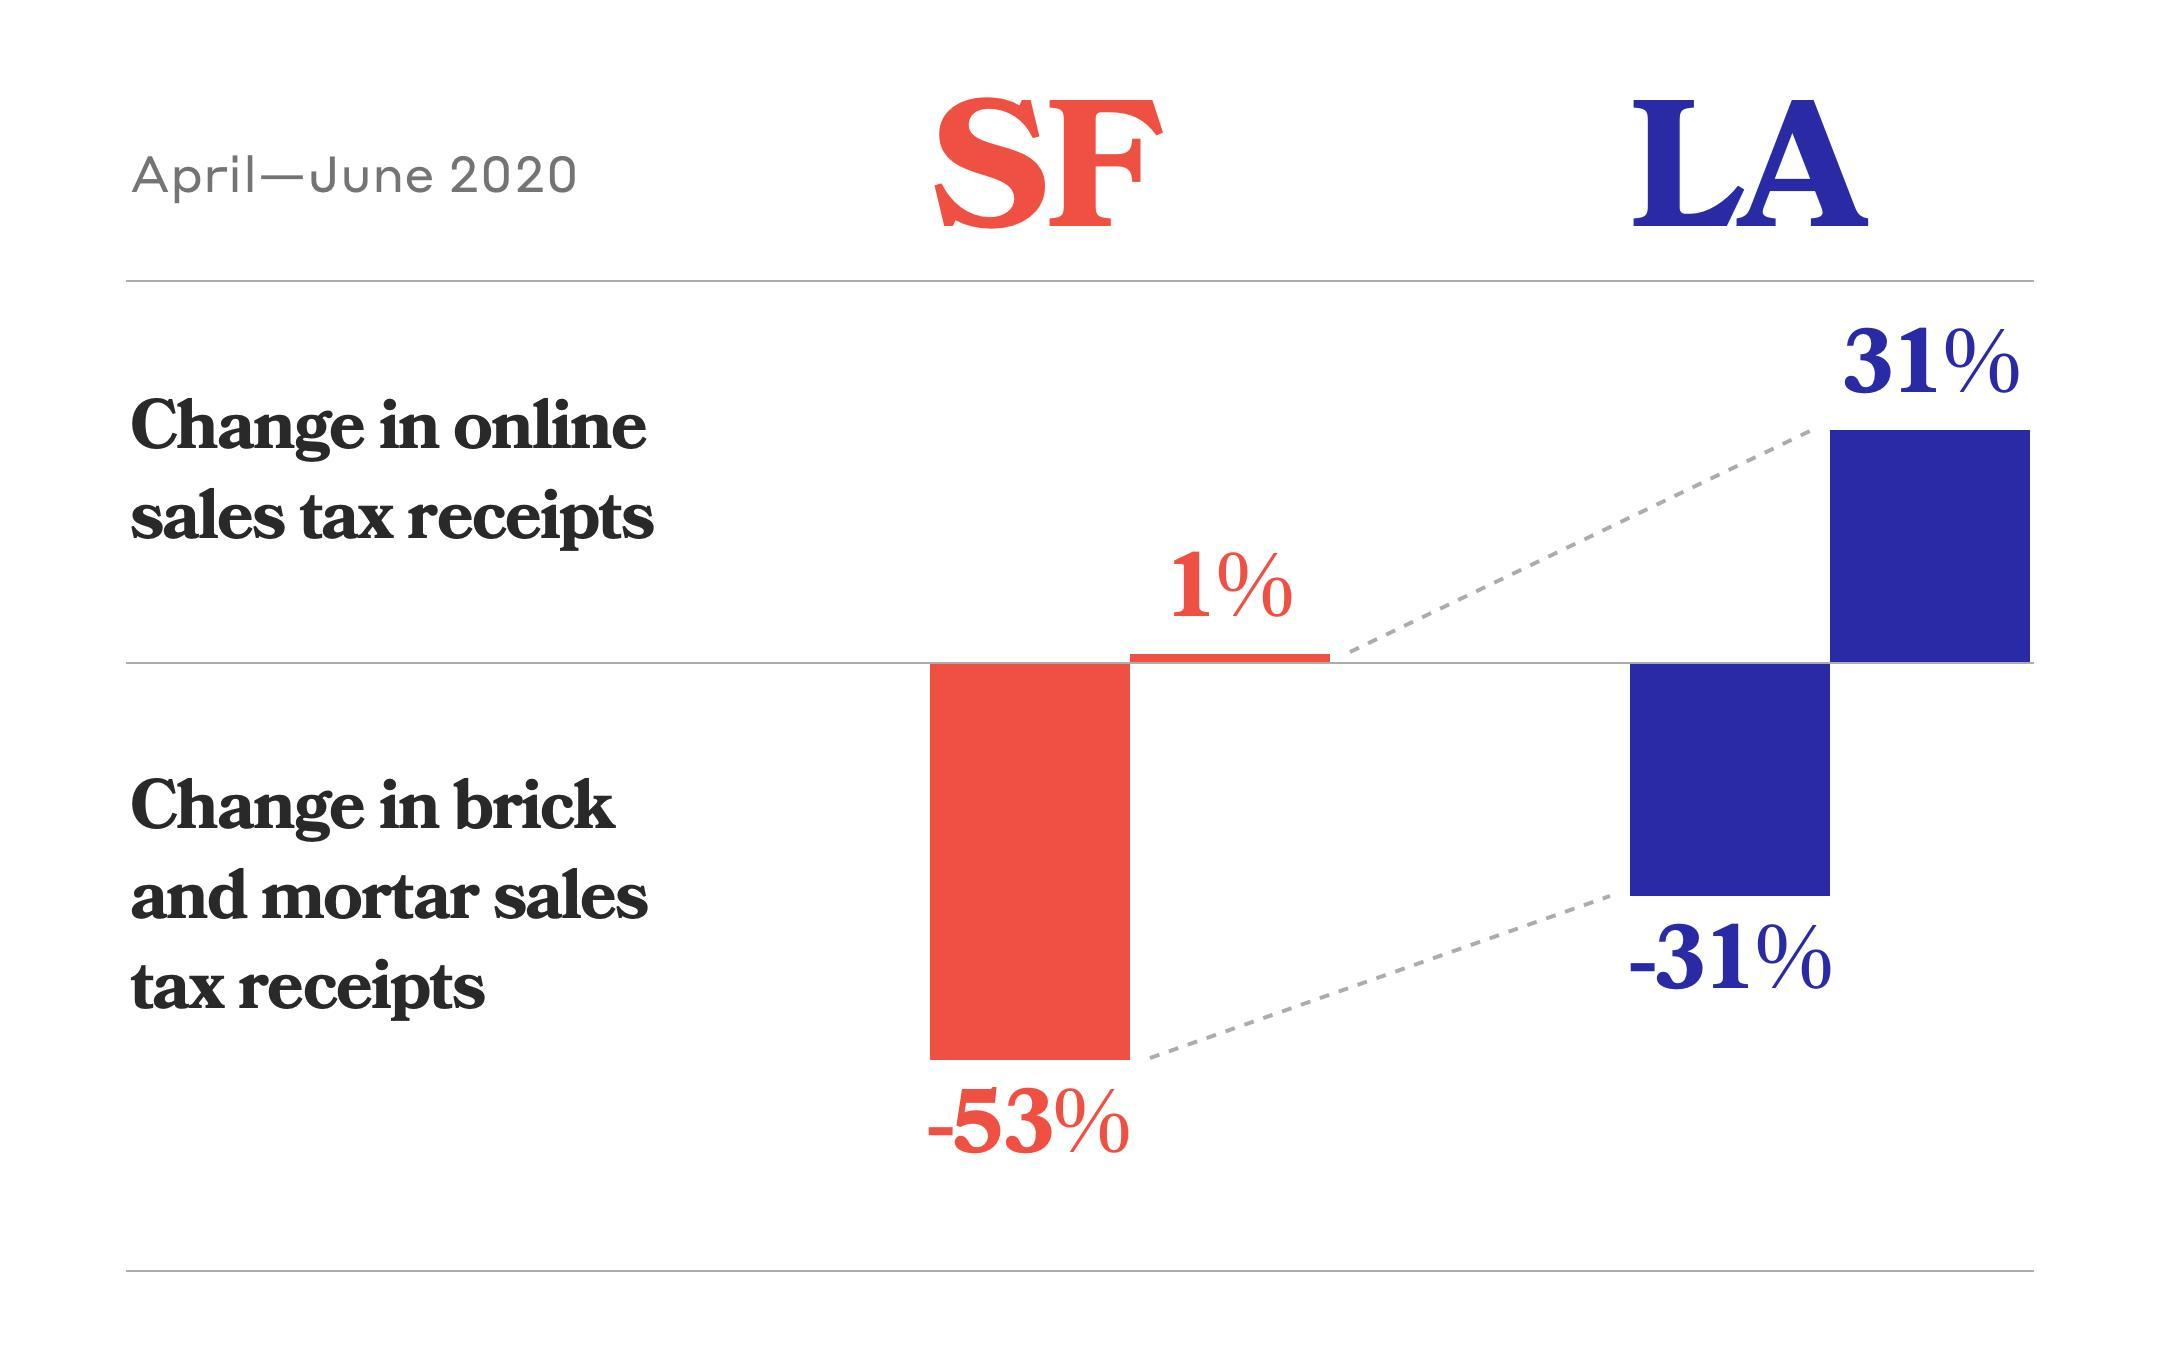 With online sales flat in SF, signs point to a decline in occupancy. Meanwhile, LA spending has jumped 31%.